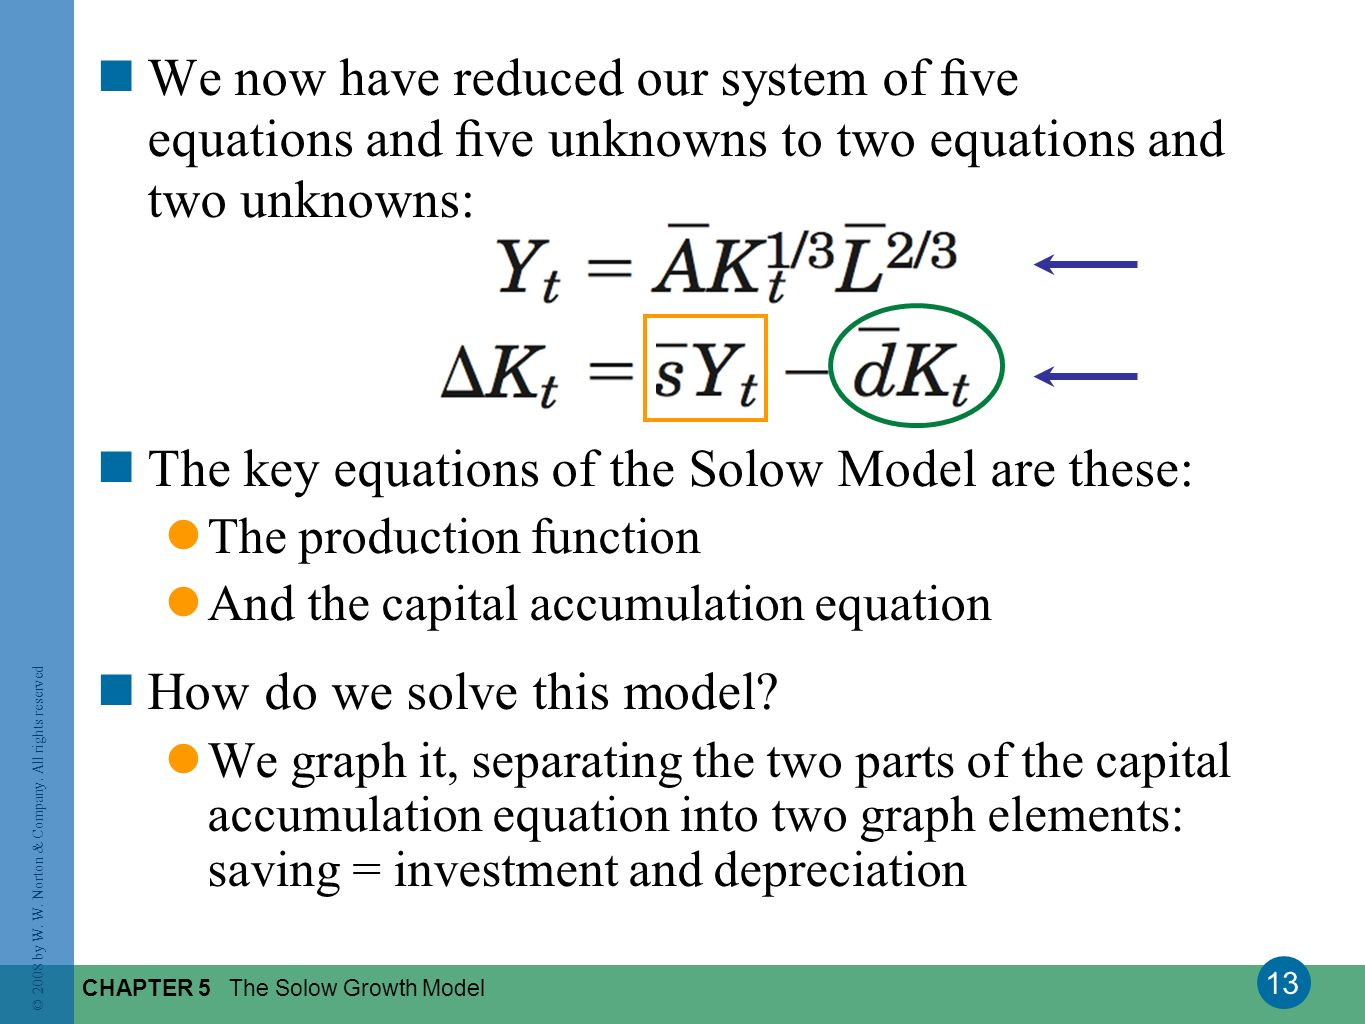 The key equations of the Solow Model are these: